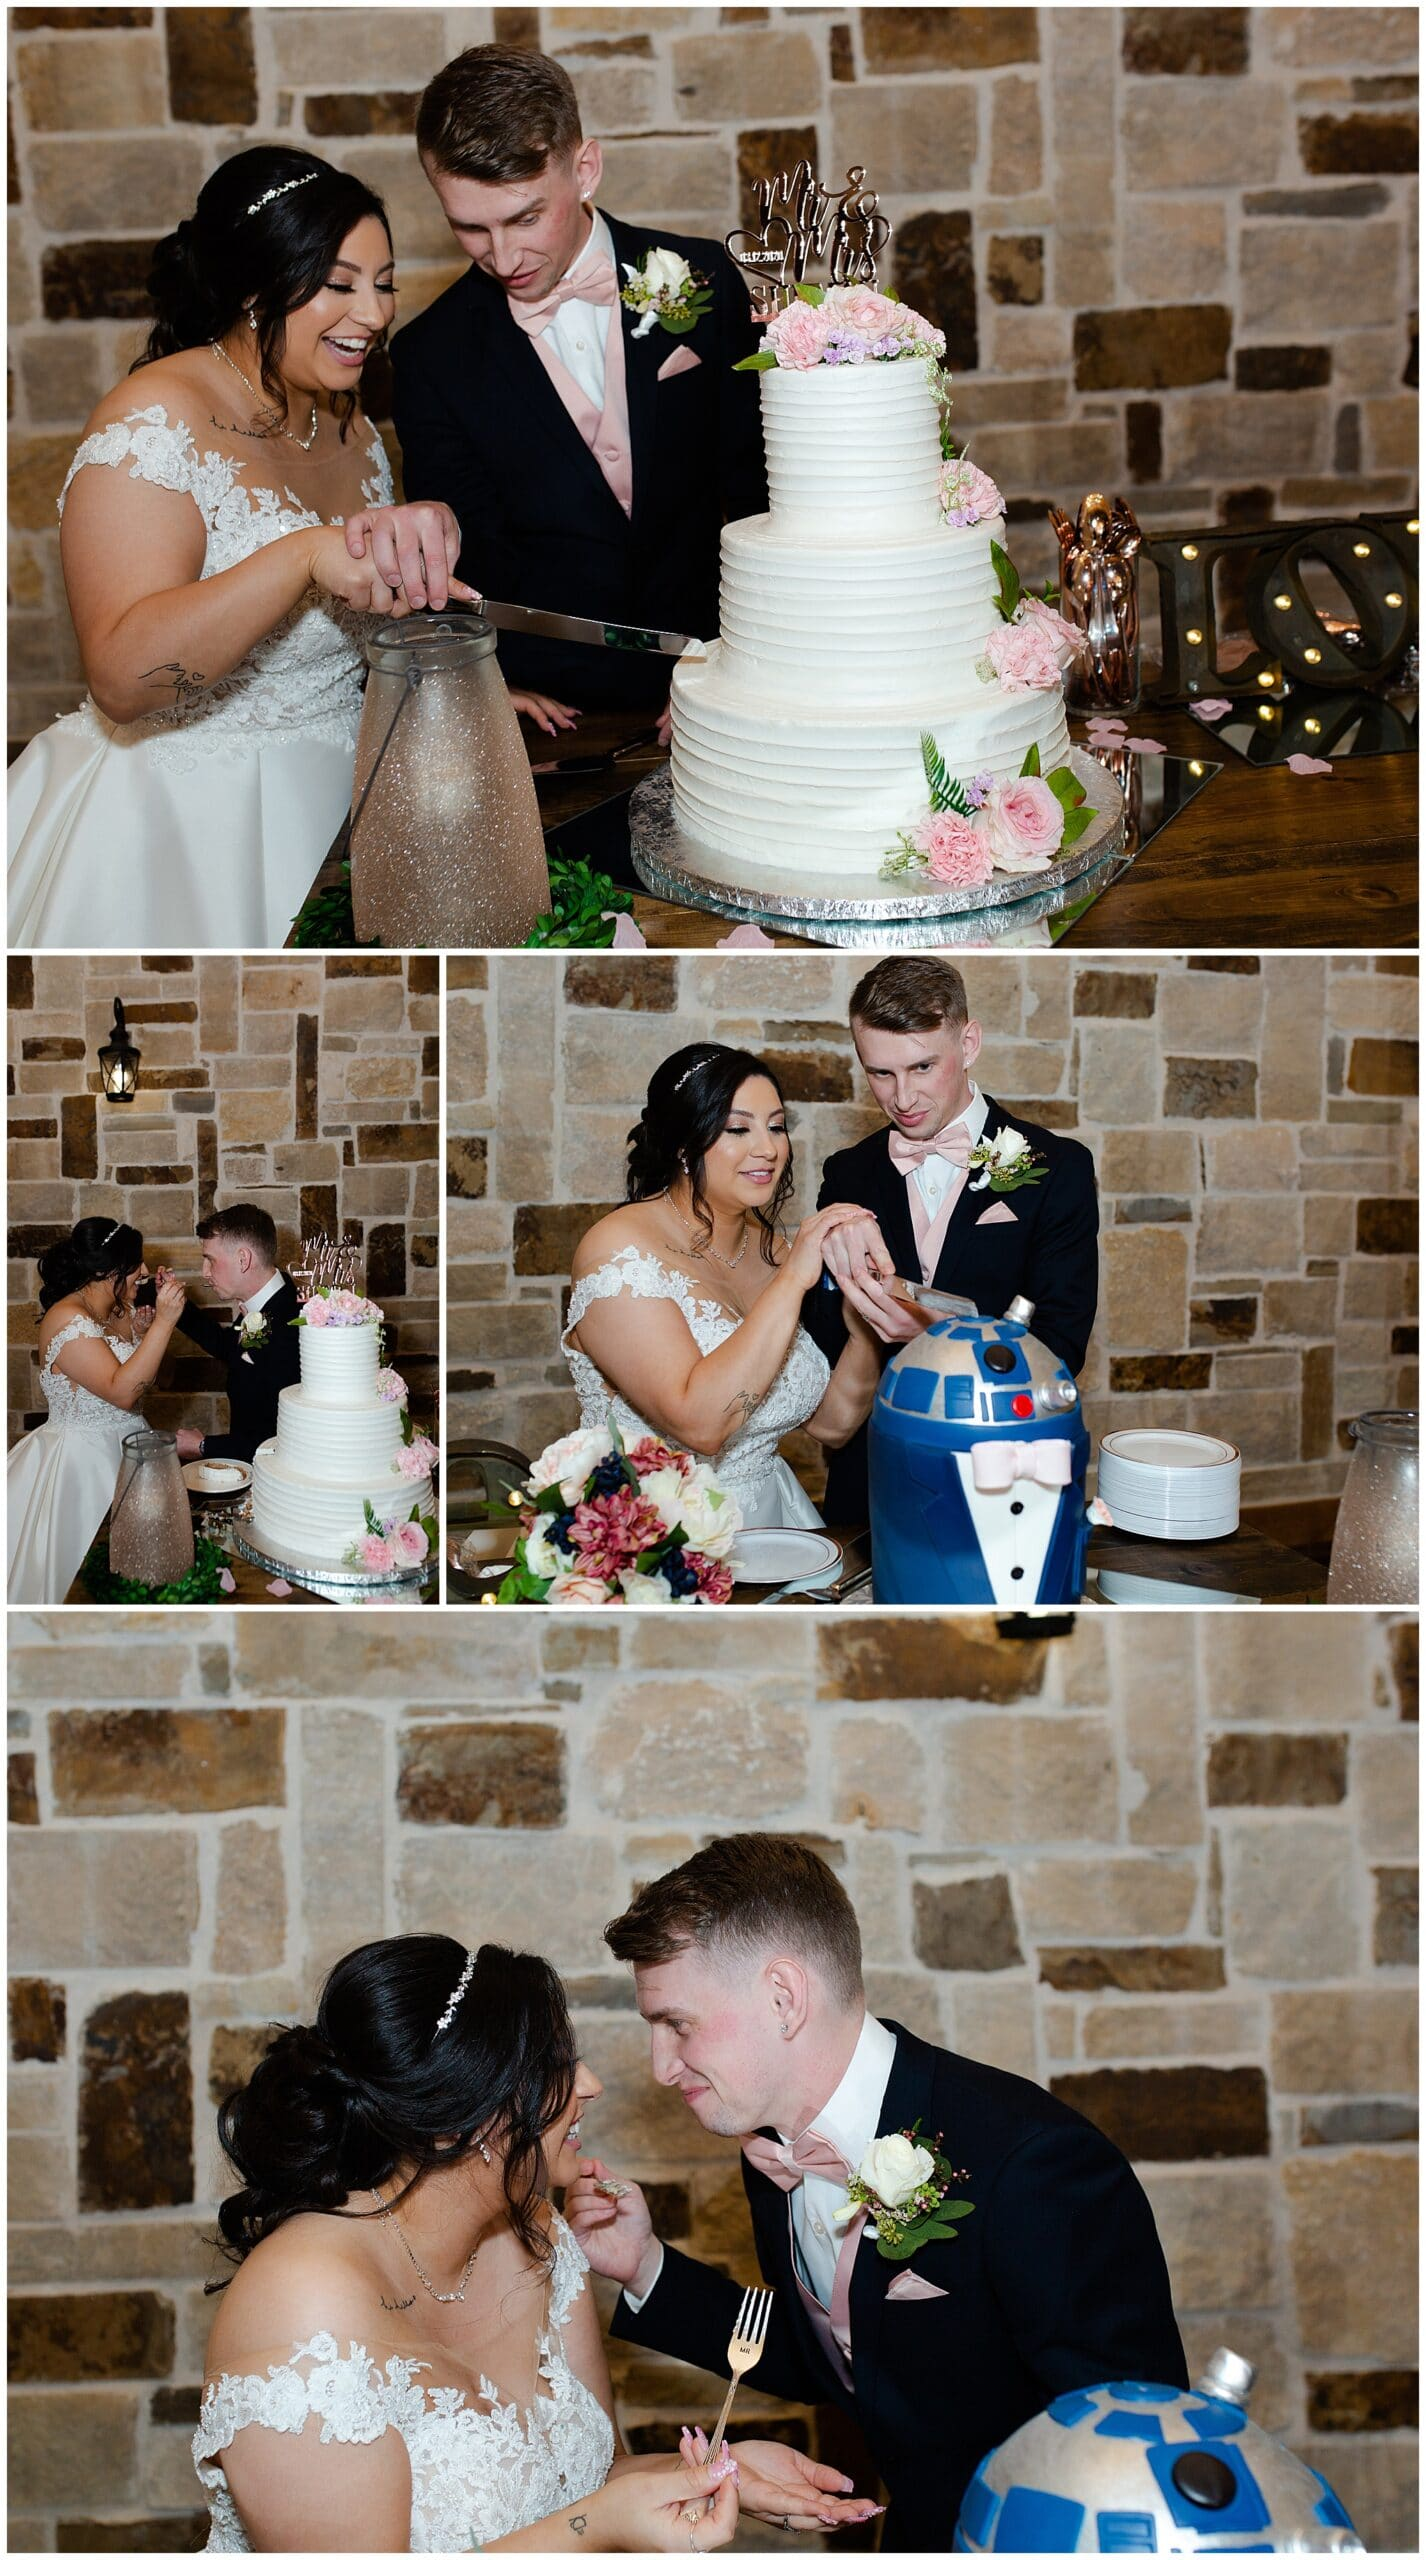 cake cutting at Bridal Oaks in Cypress Texas by Houston wedding photographer Swish and Click Photography